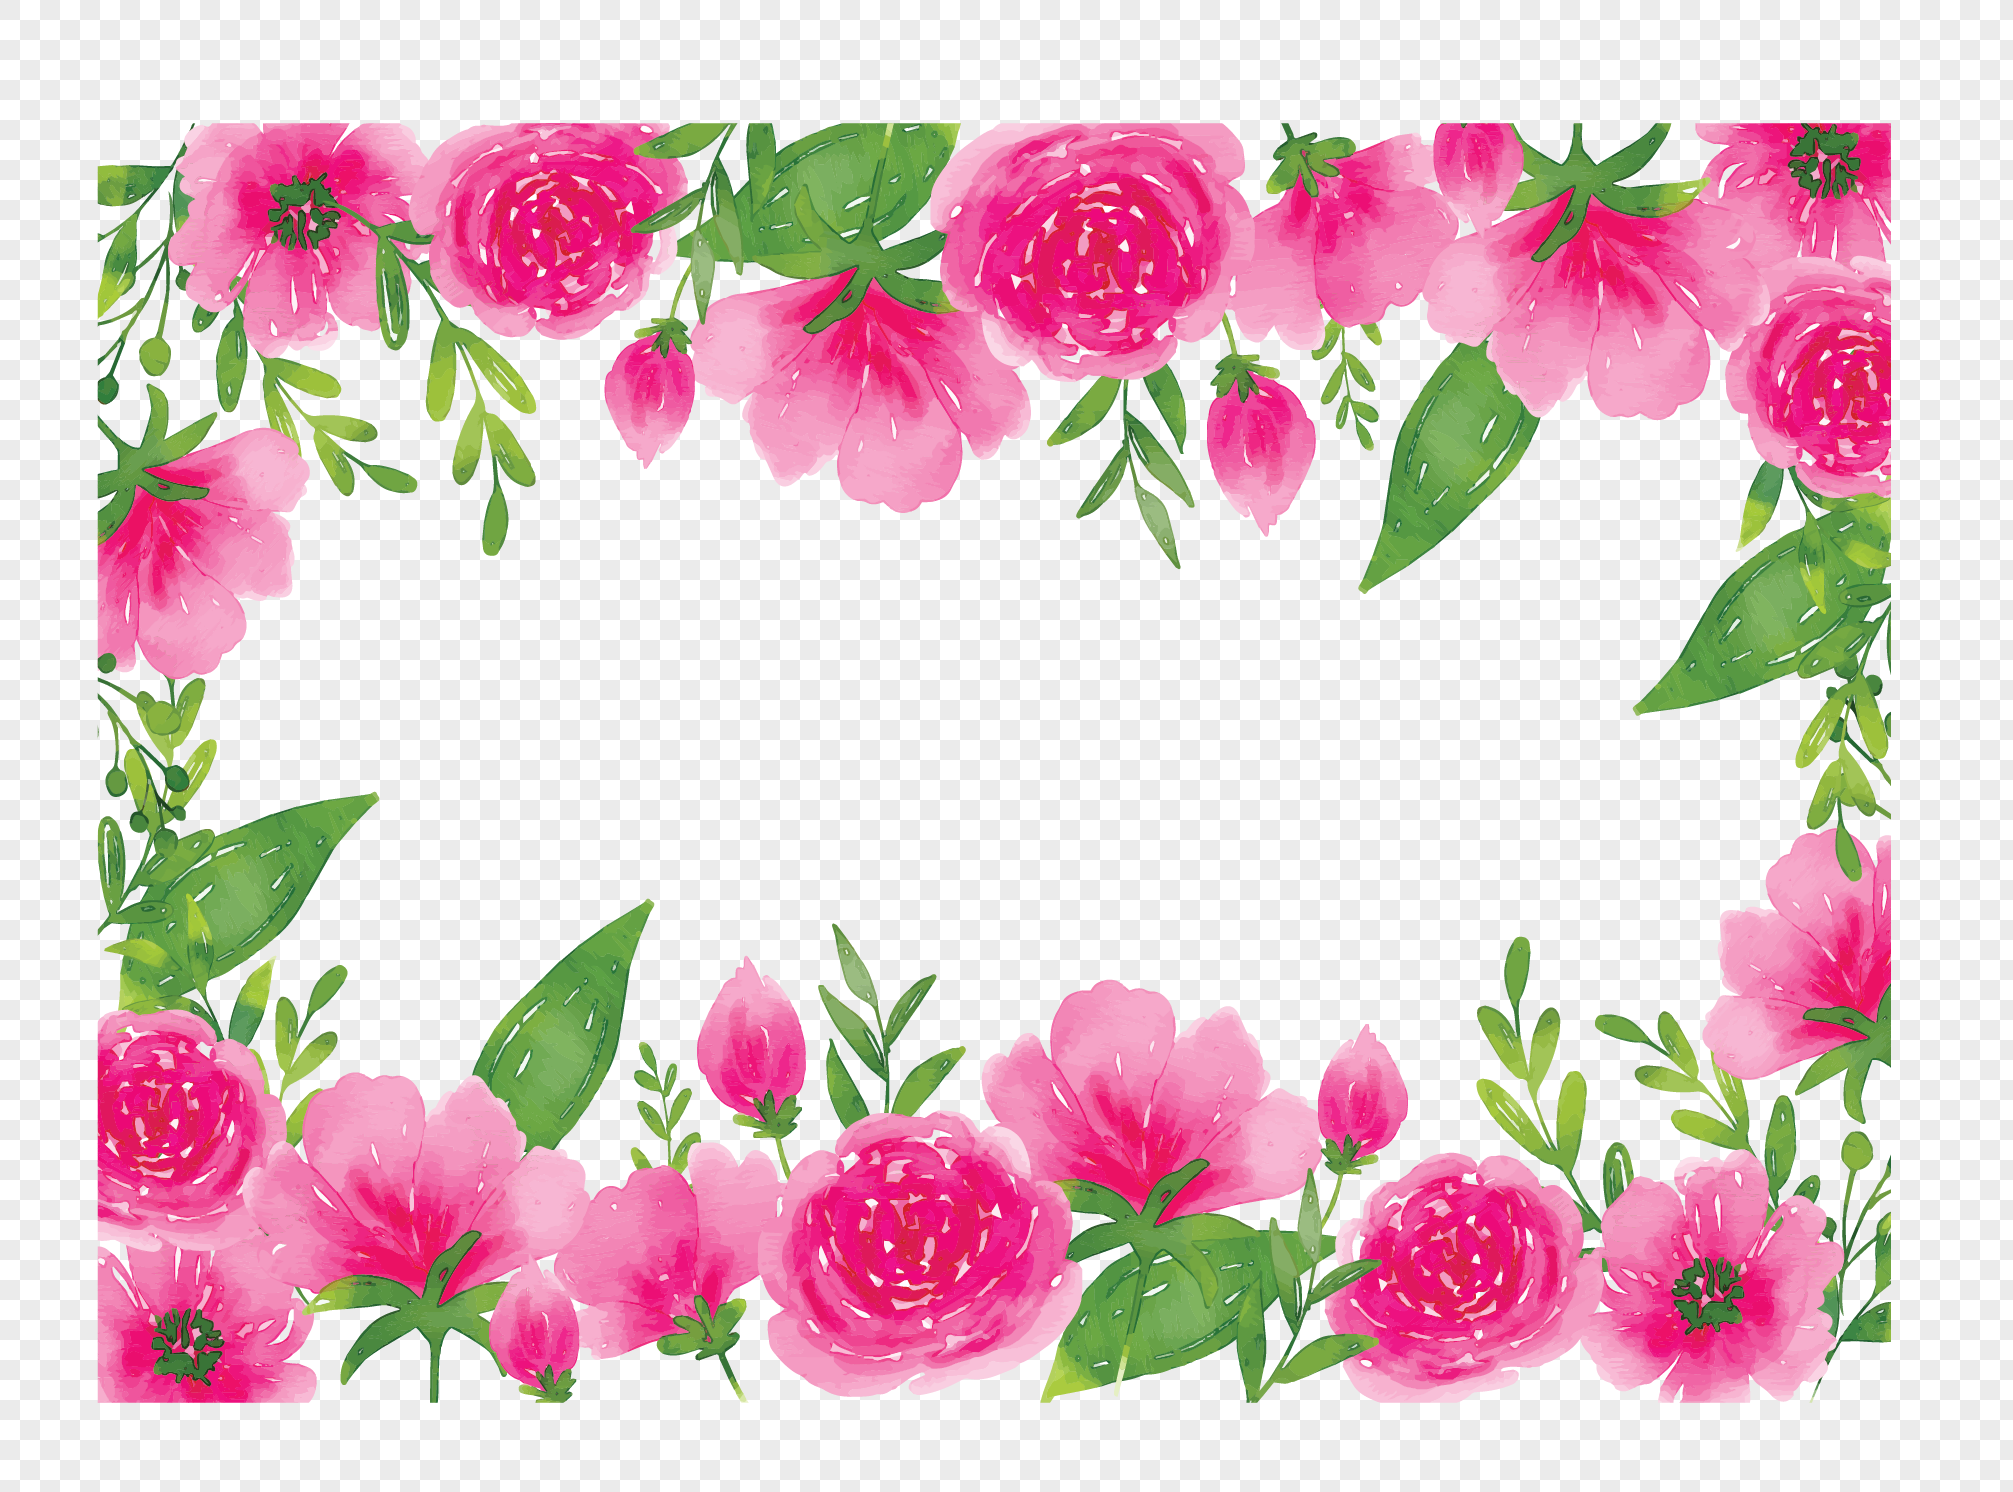 Romantic Watercolor Pink Flower Vine Png Imagepicture Free Download